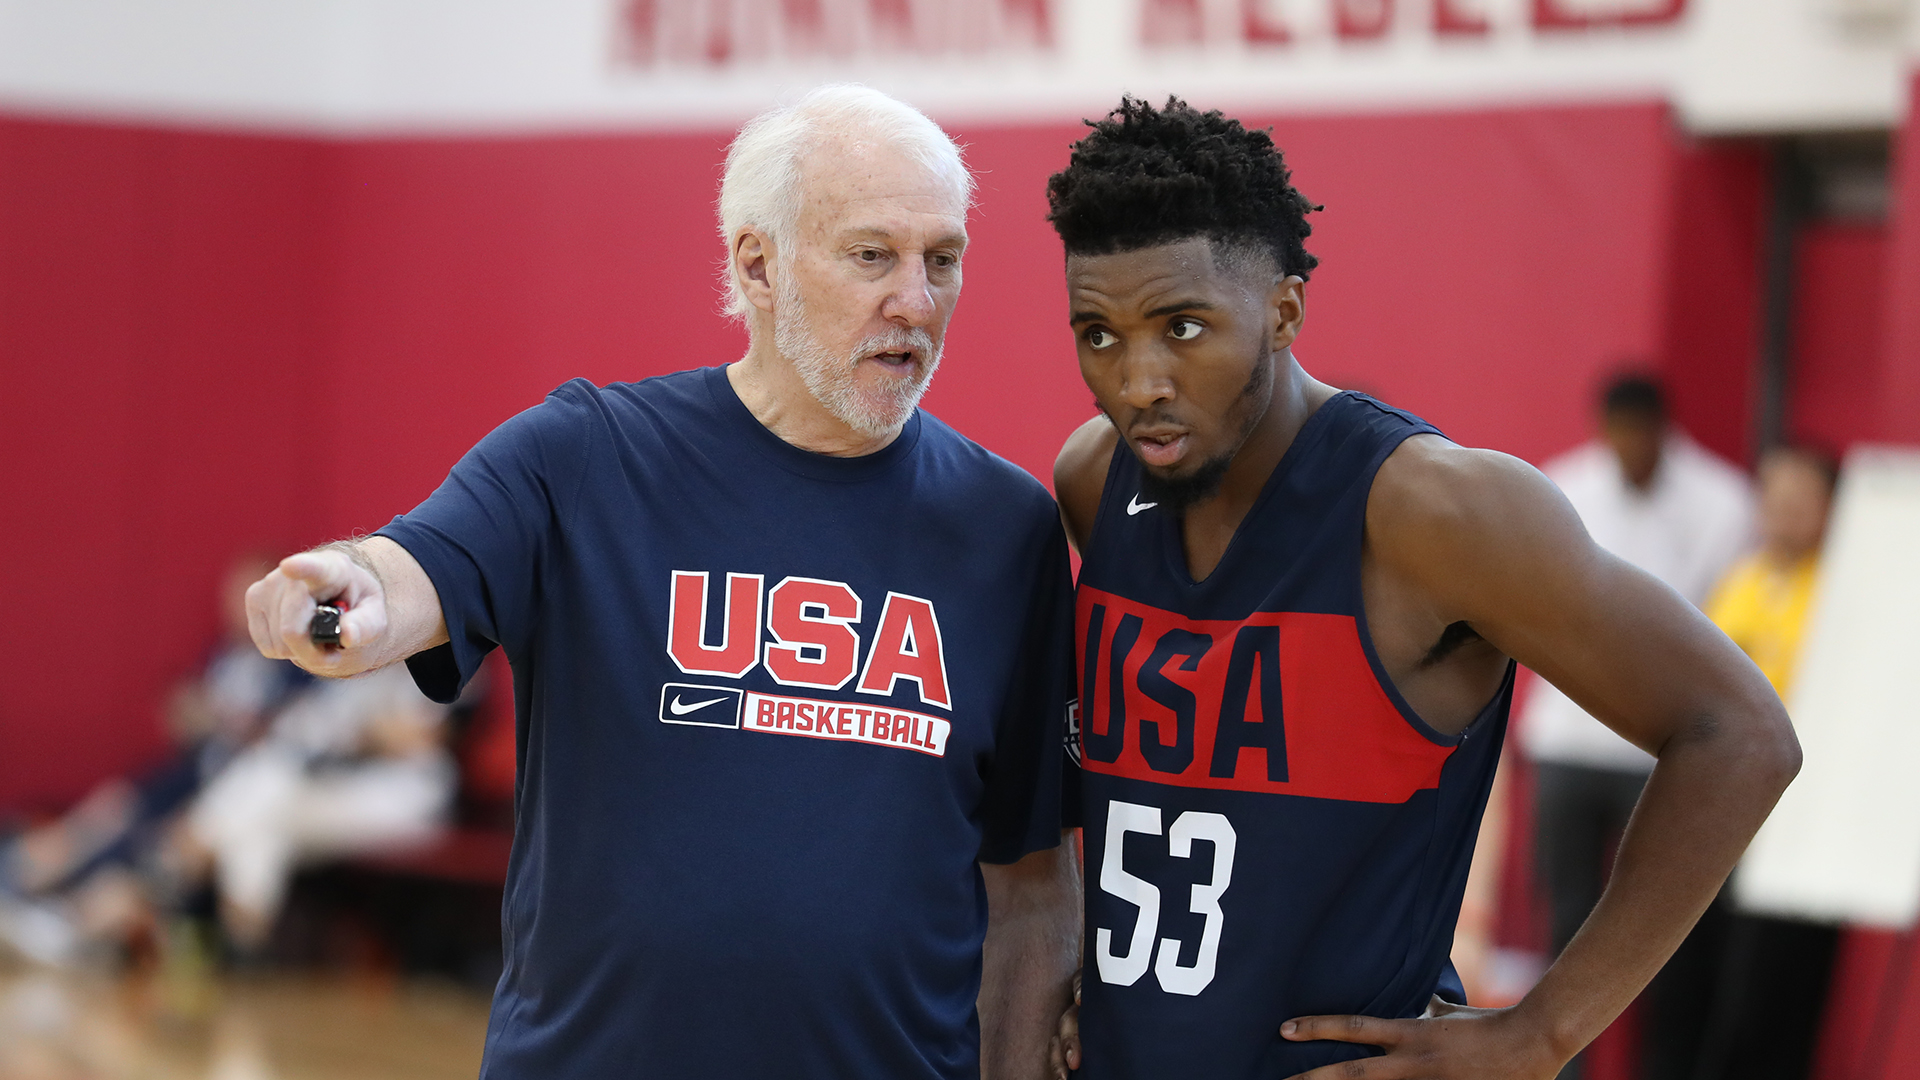 2019 USA Basketball Men's National Team Quotes